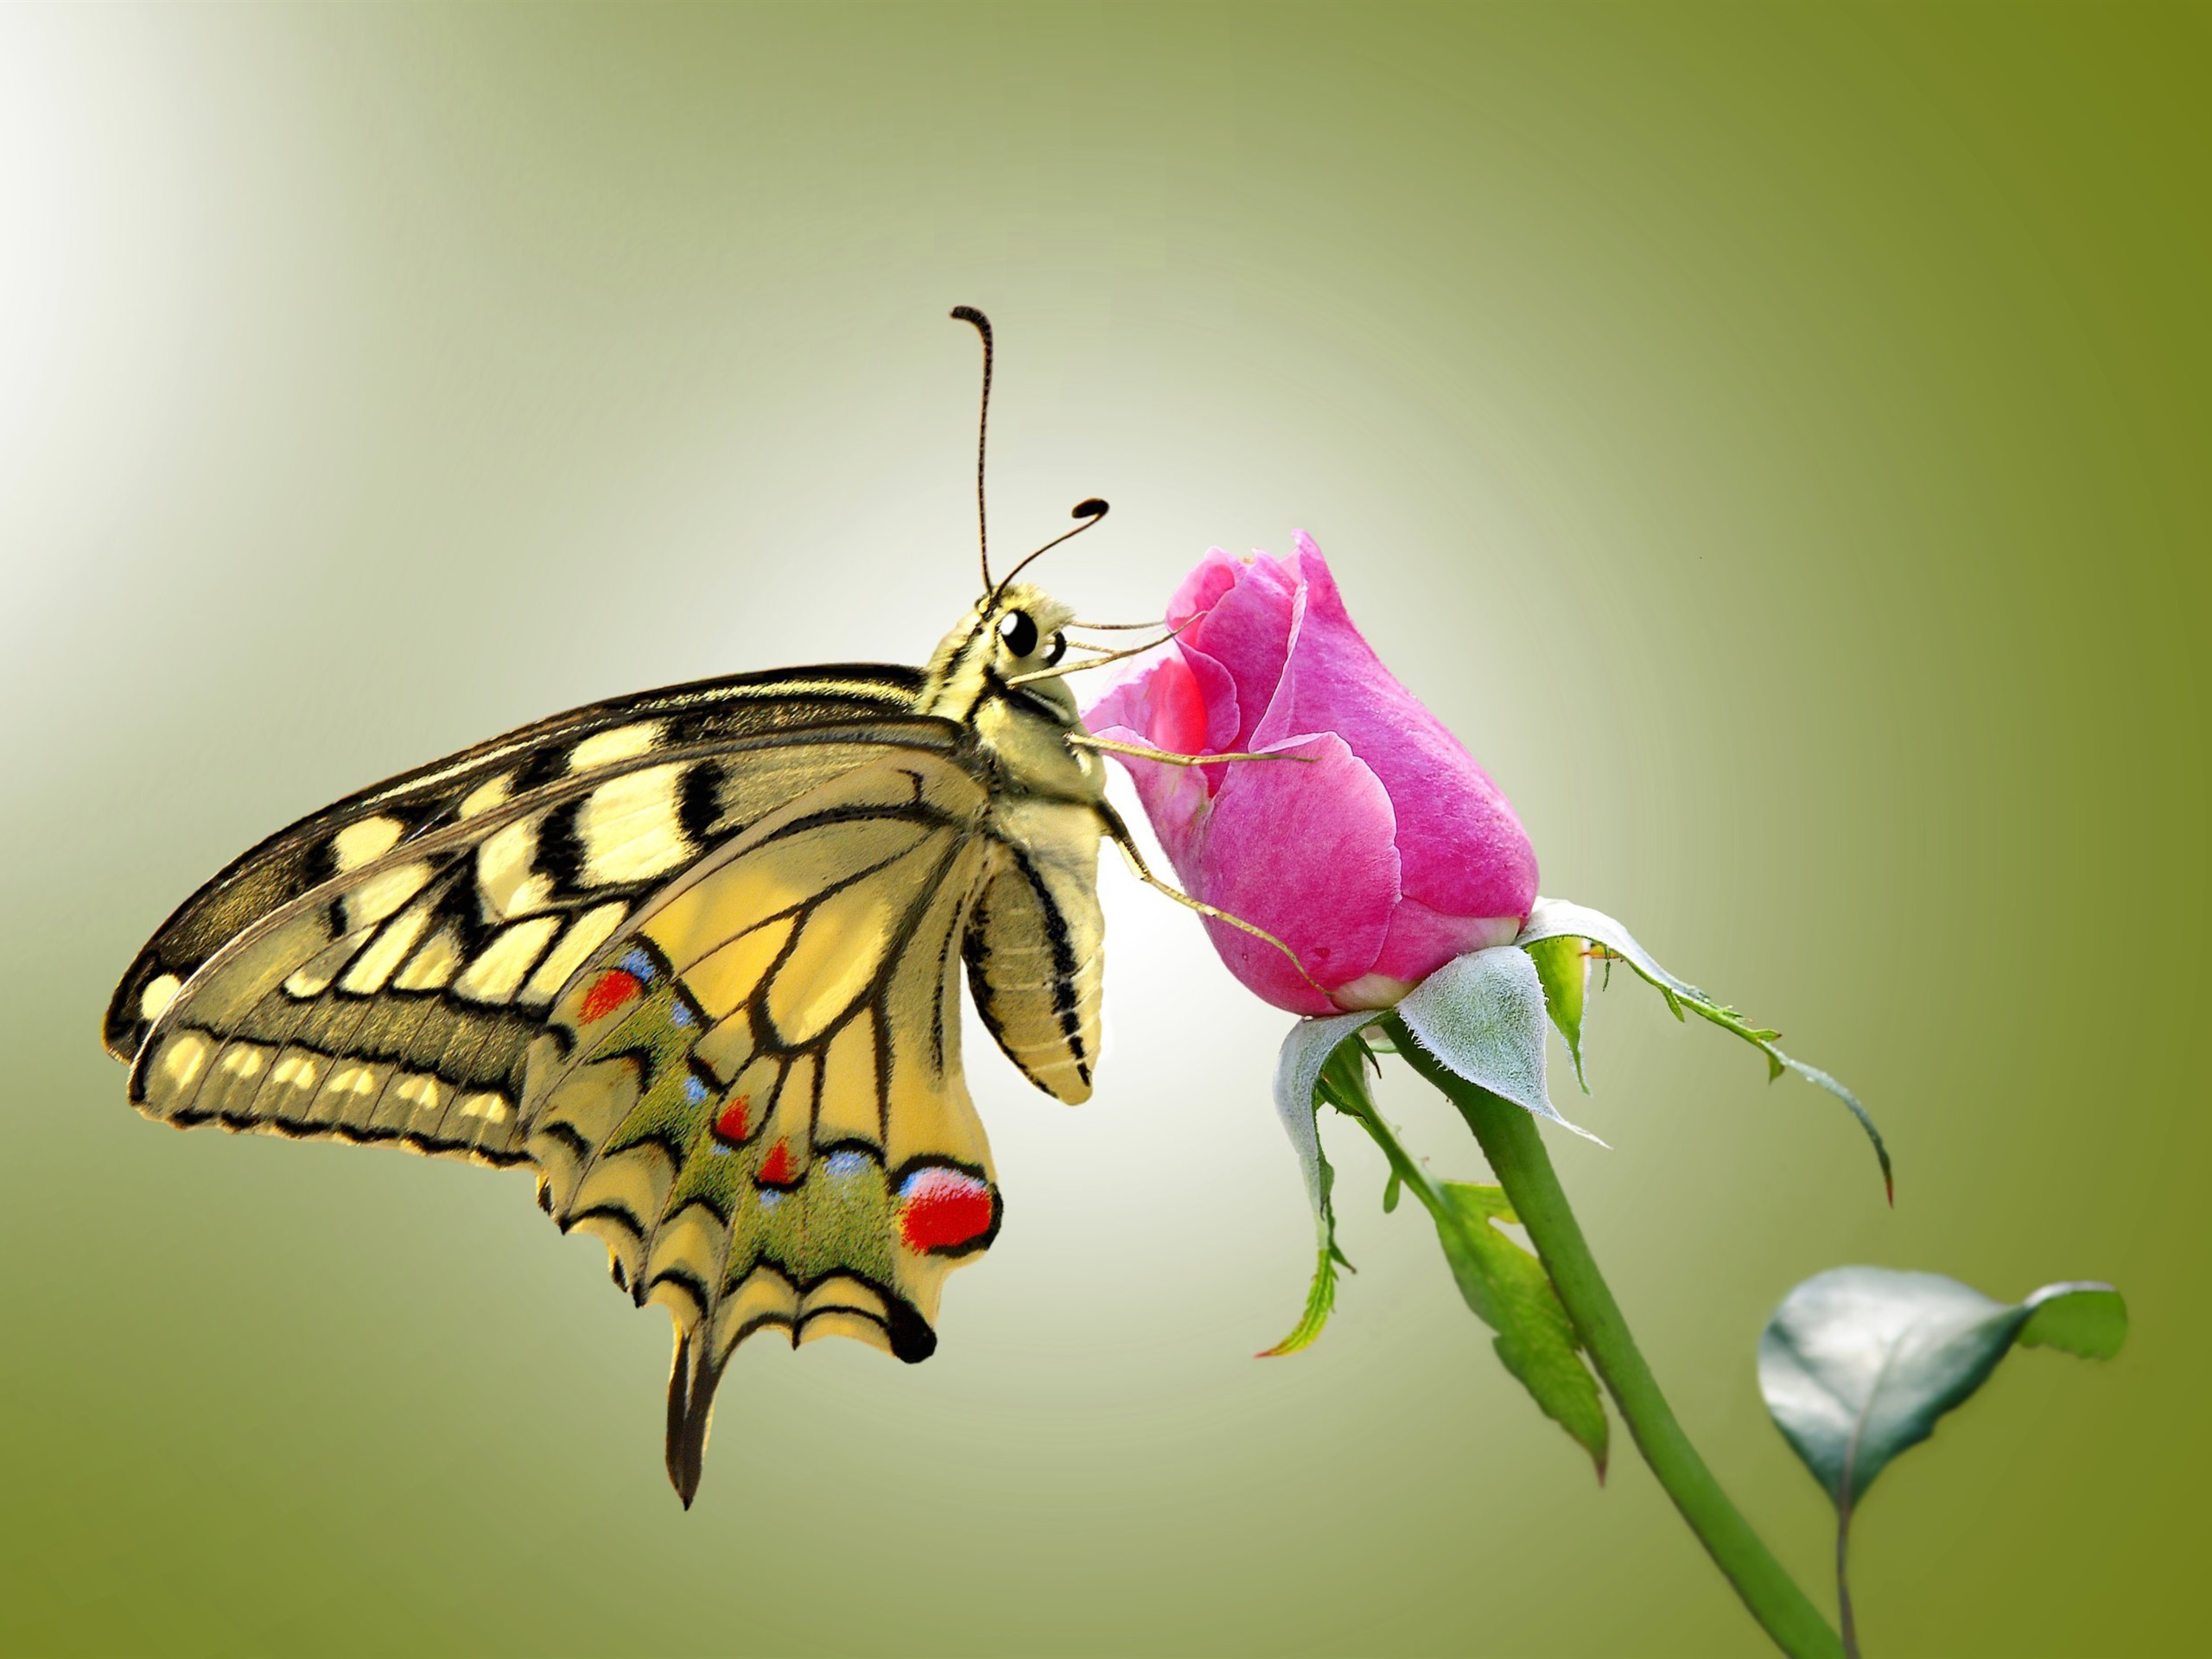 Butterfly and pink rose wallpaper 2560x1920